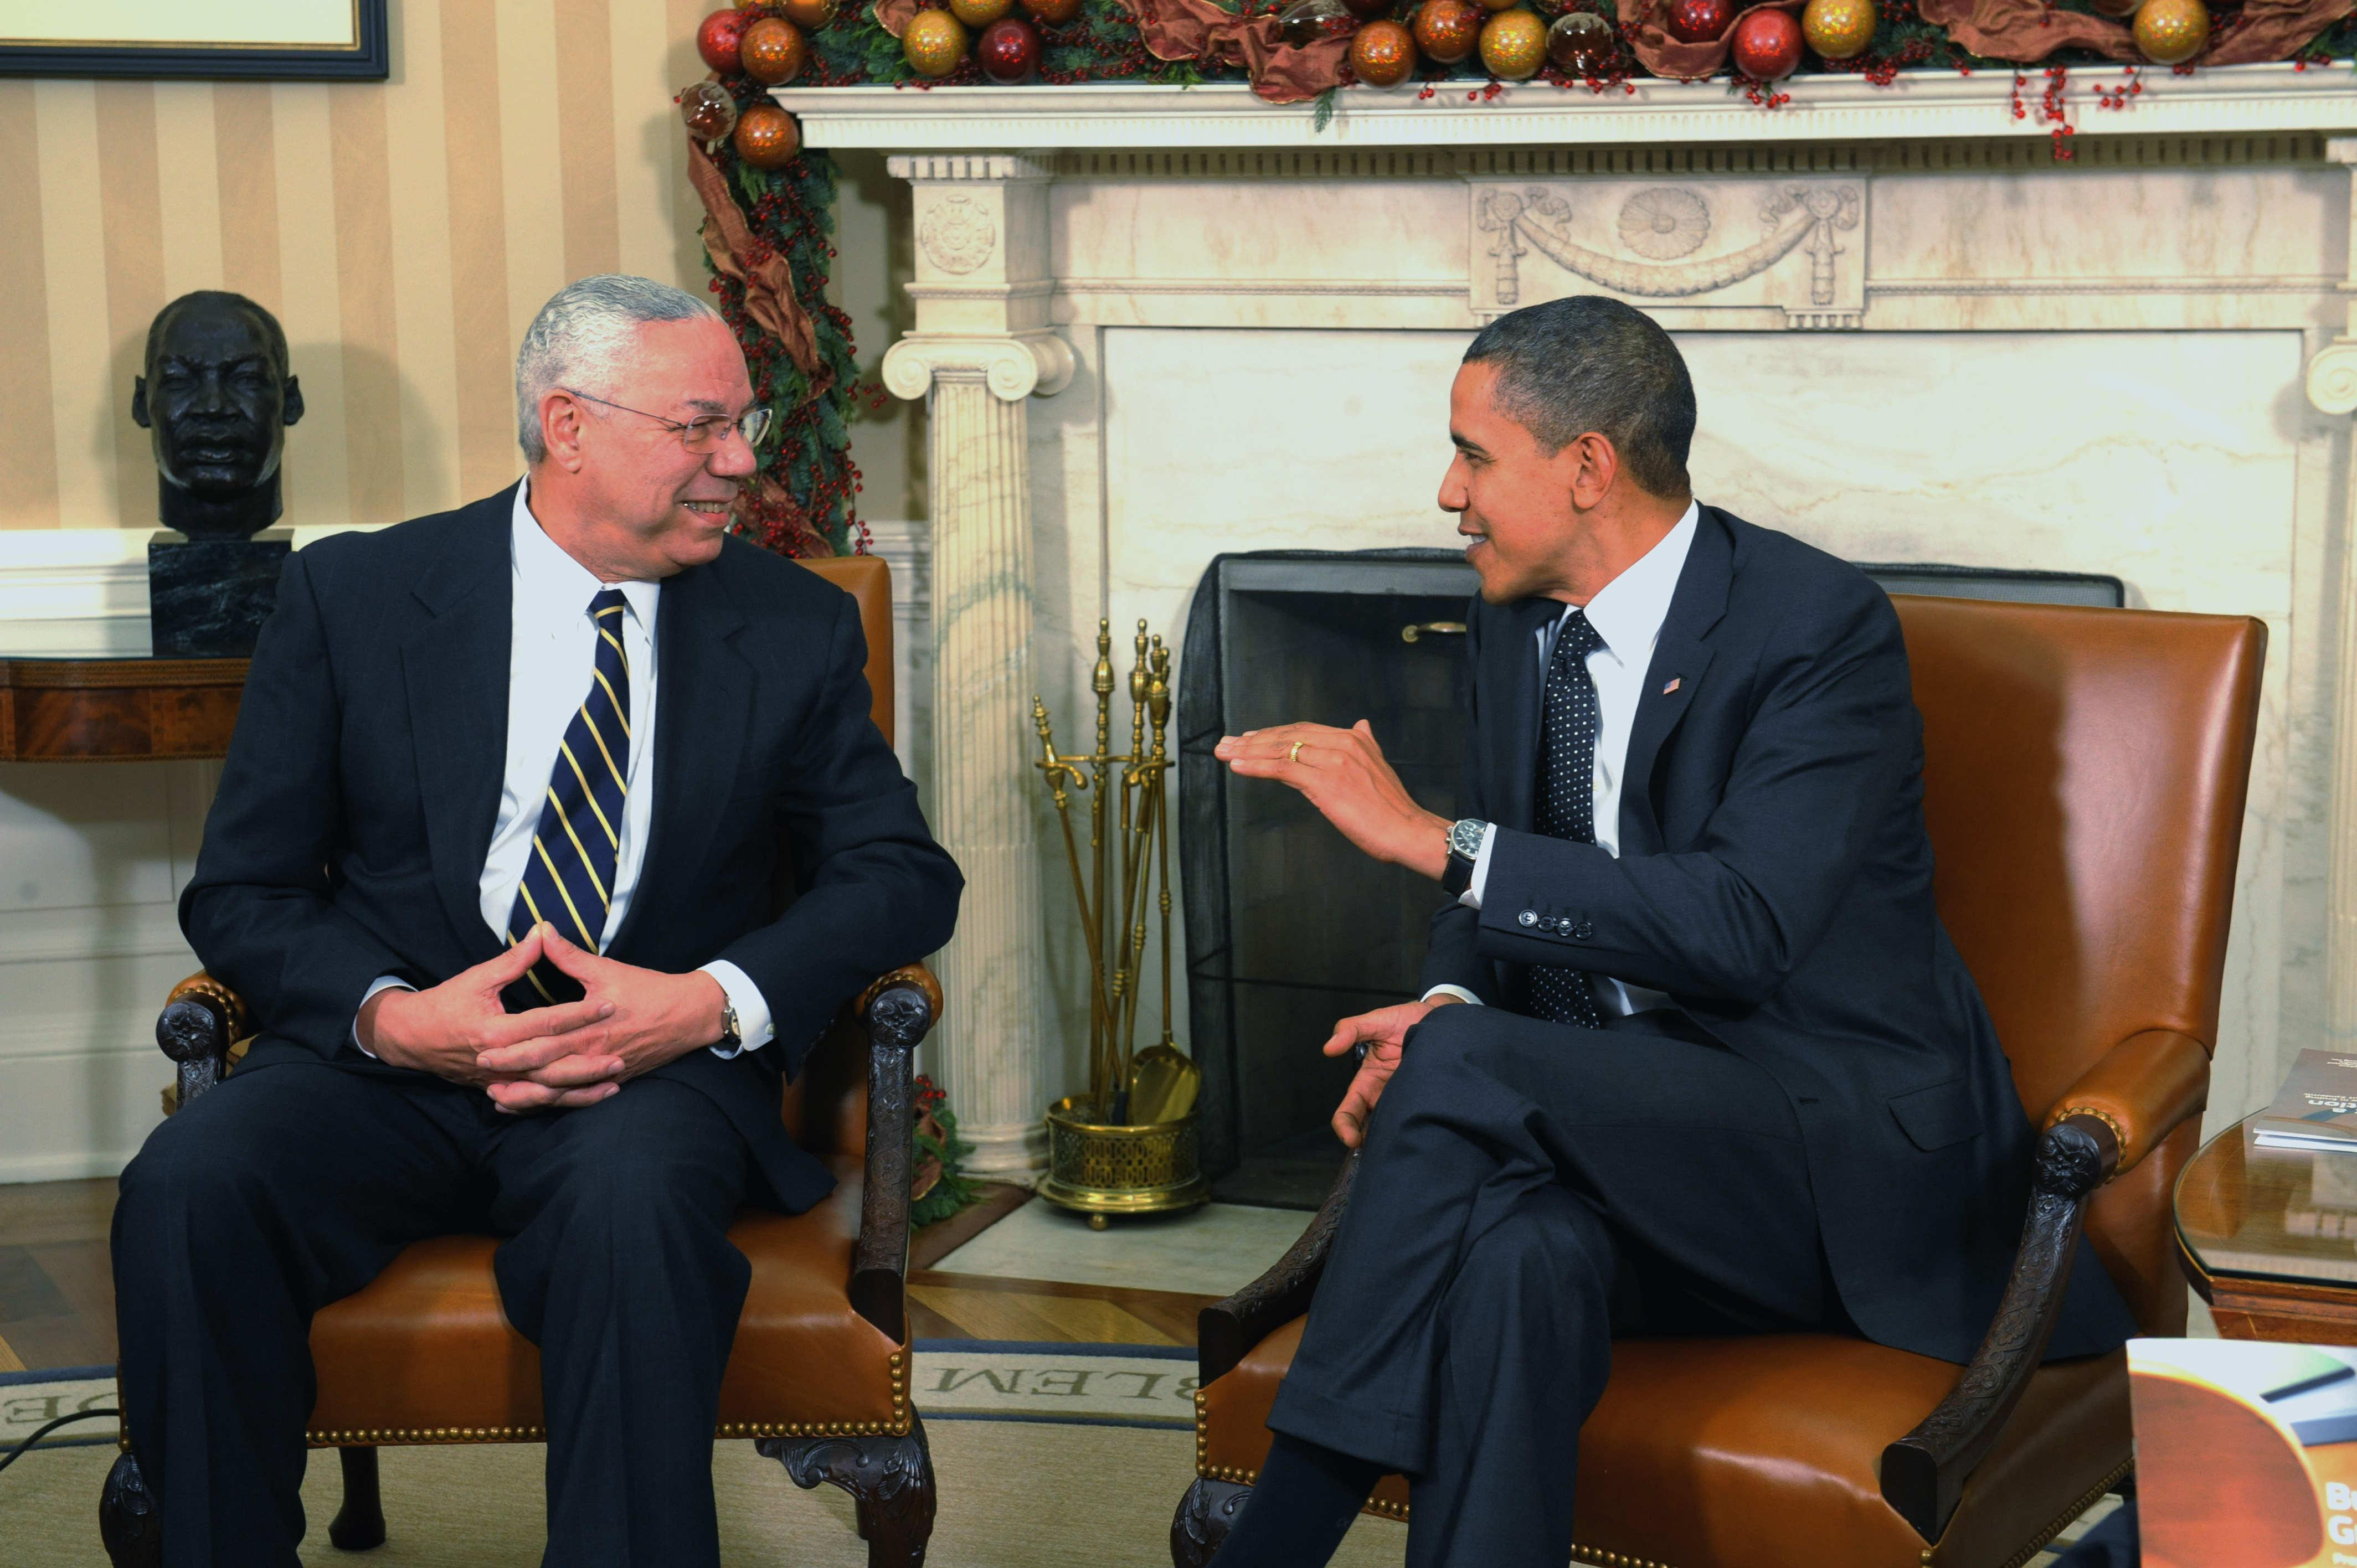 Former Chairman Joint Chiefs Of Staff Colin Powell Meets With President Obama and Vice President Biden In Oval Office